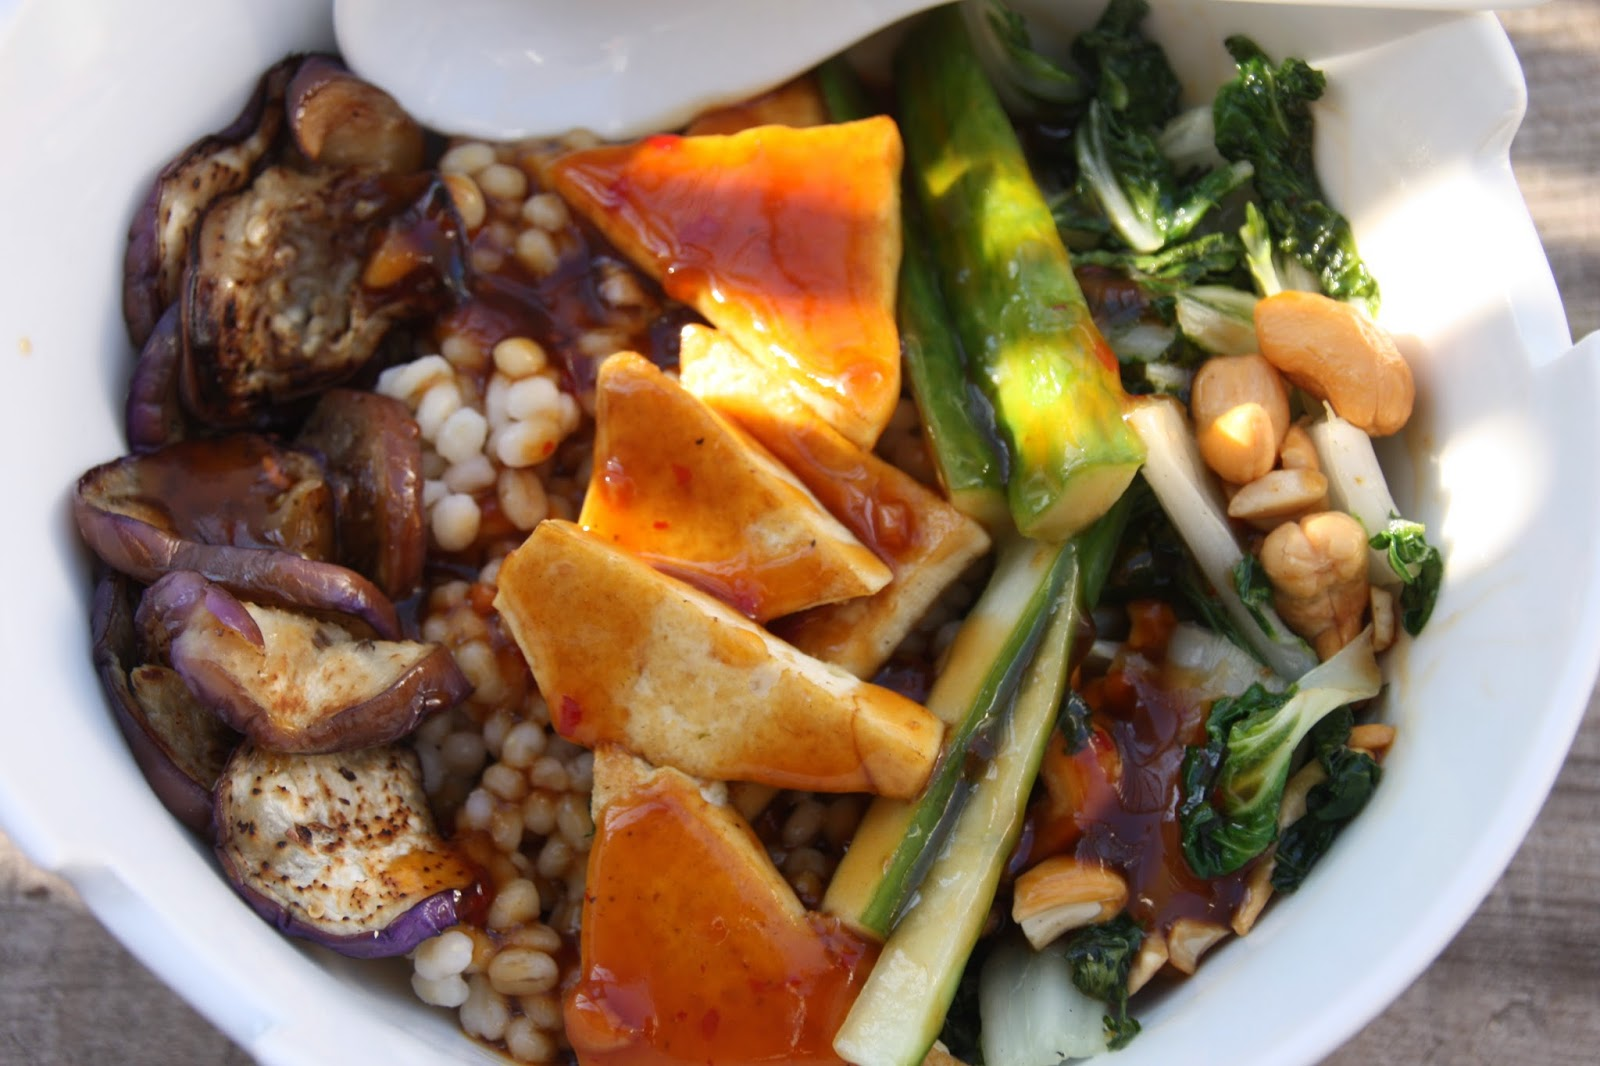 Tofu vegetable bowl